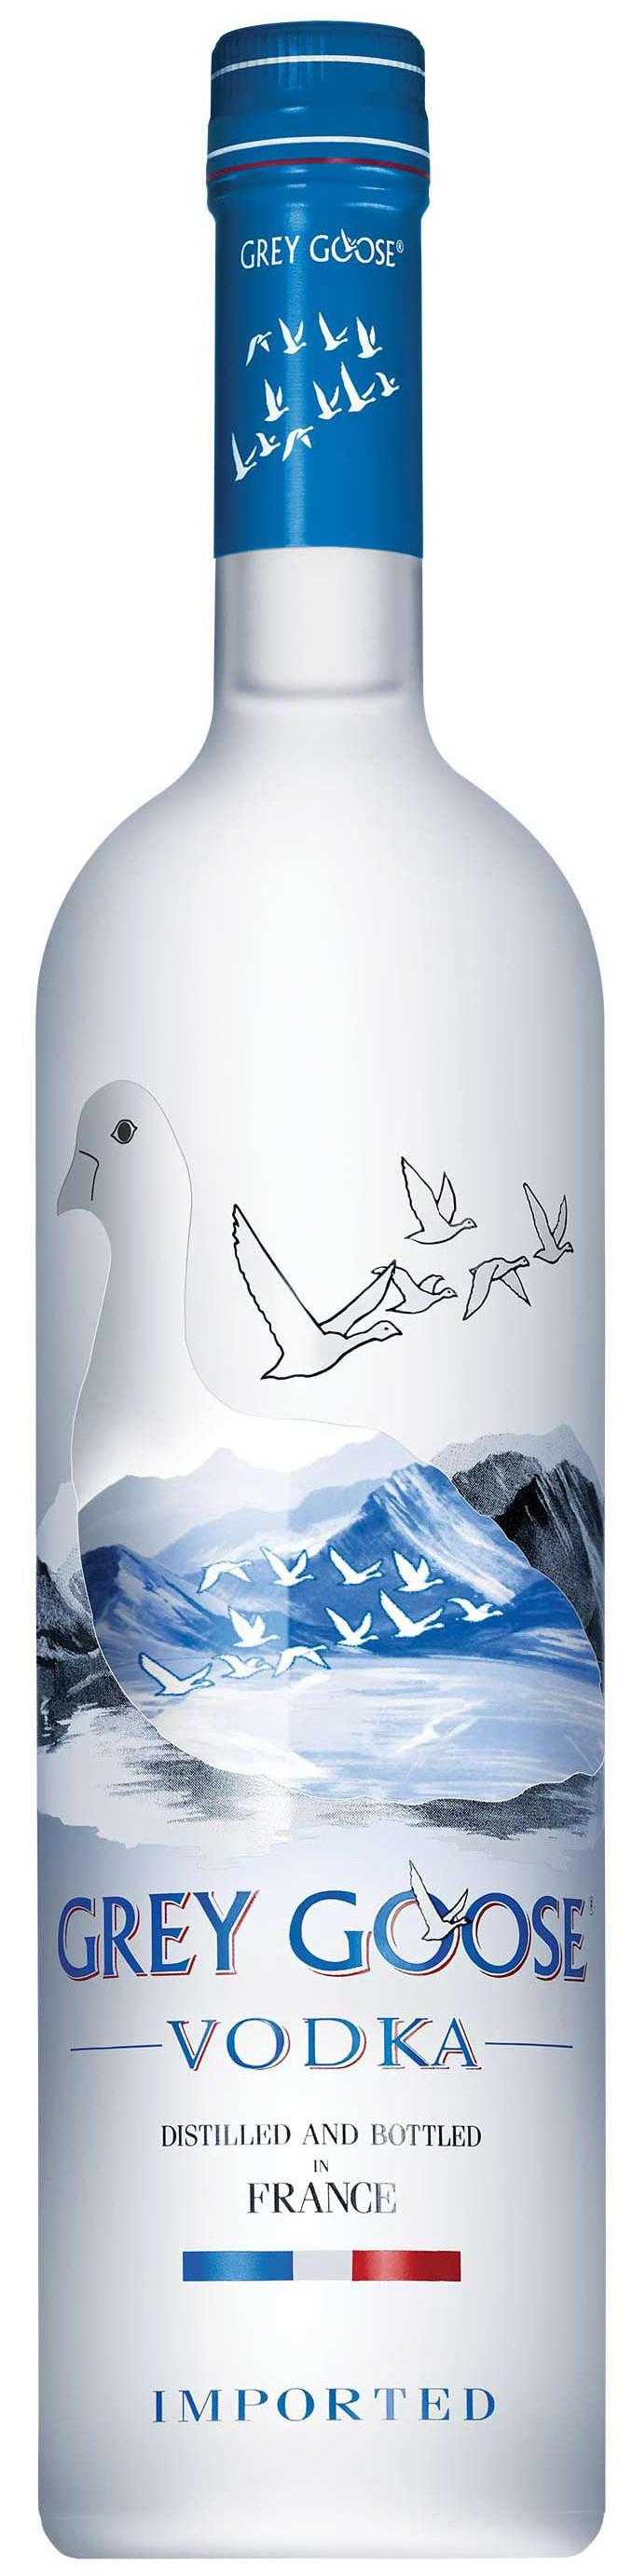 Grey Goose Vodka Label Buy Grey Goose Vodka 4...